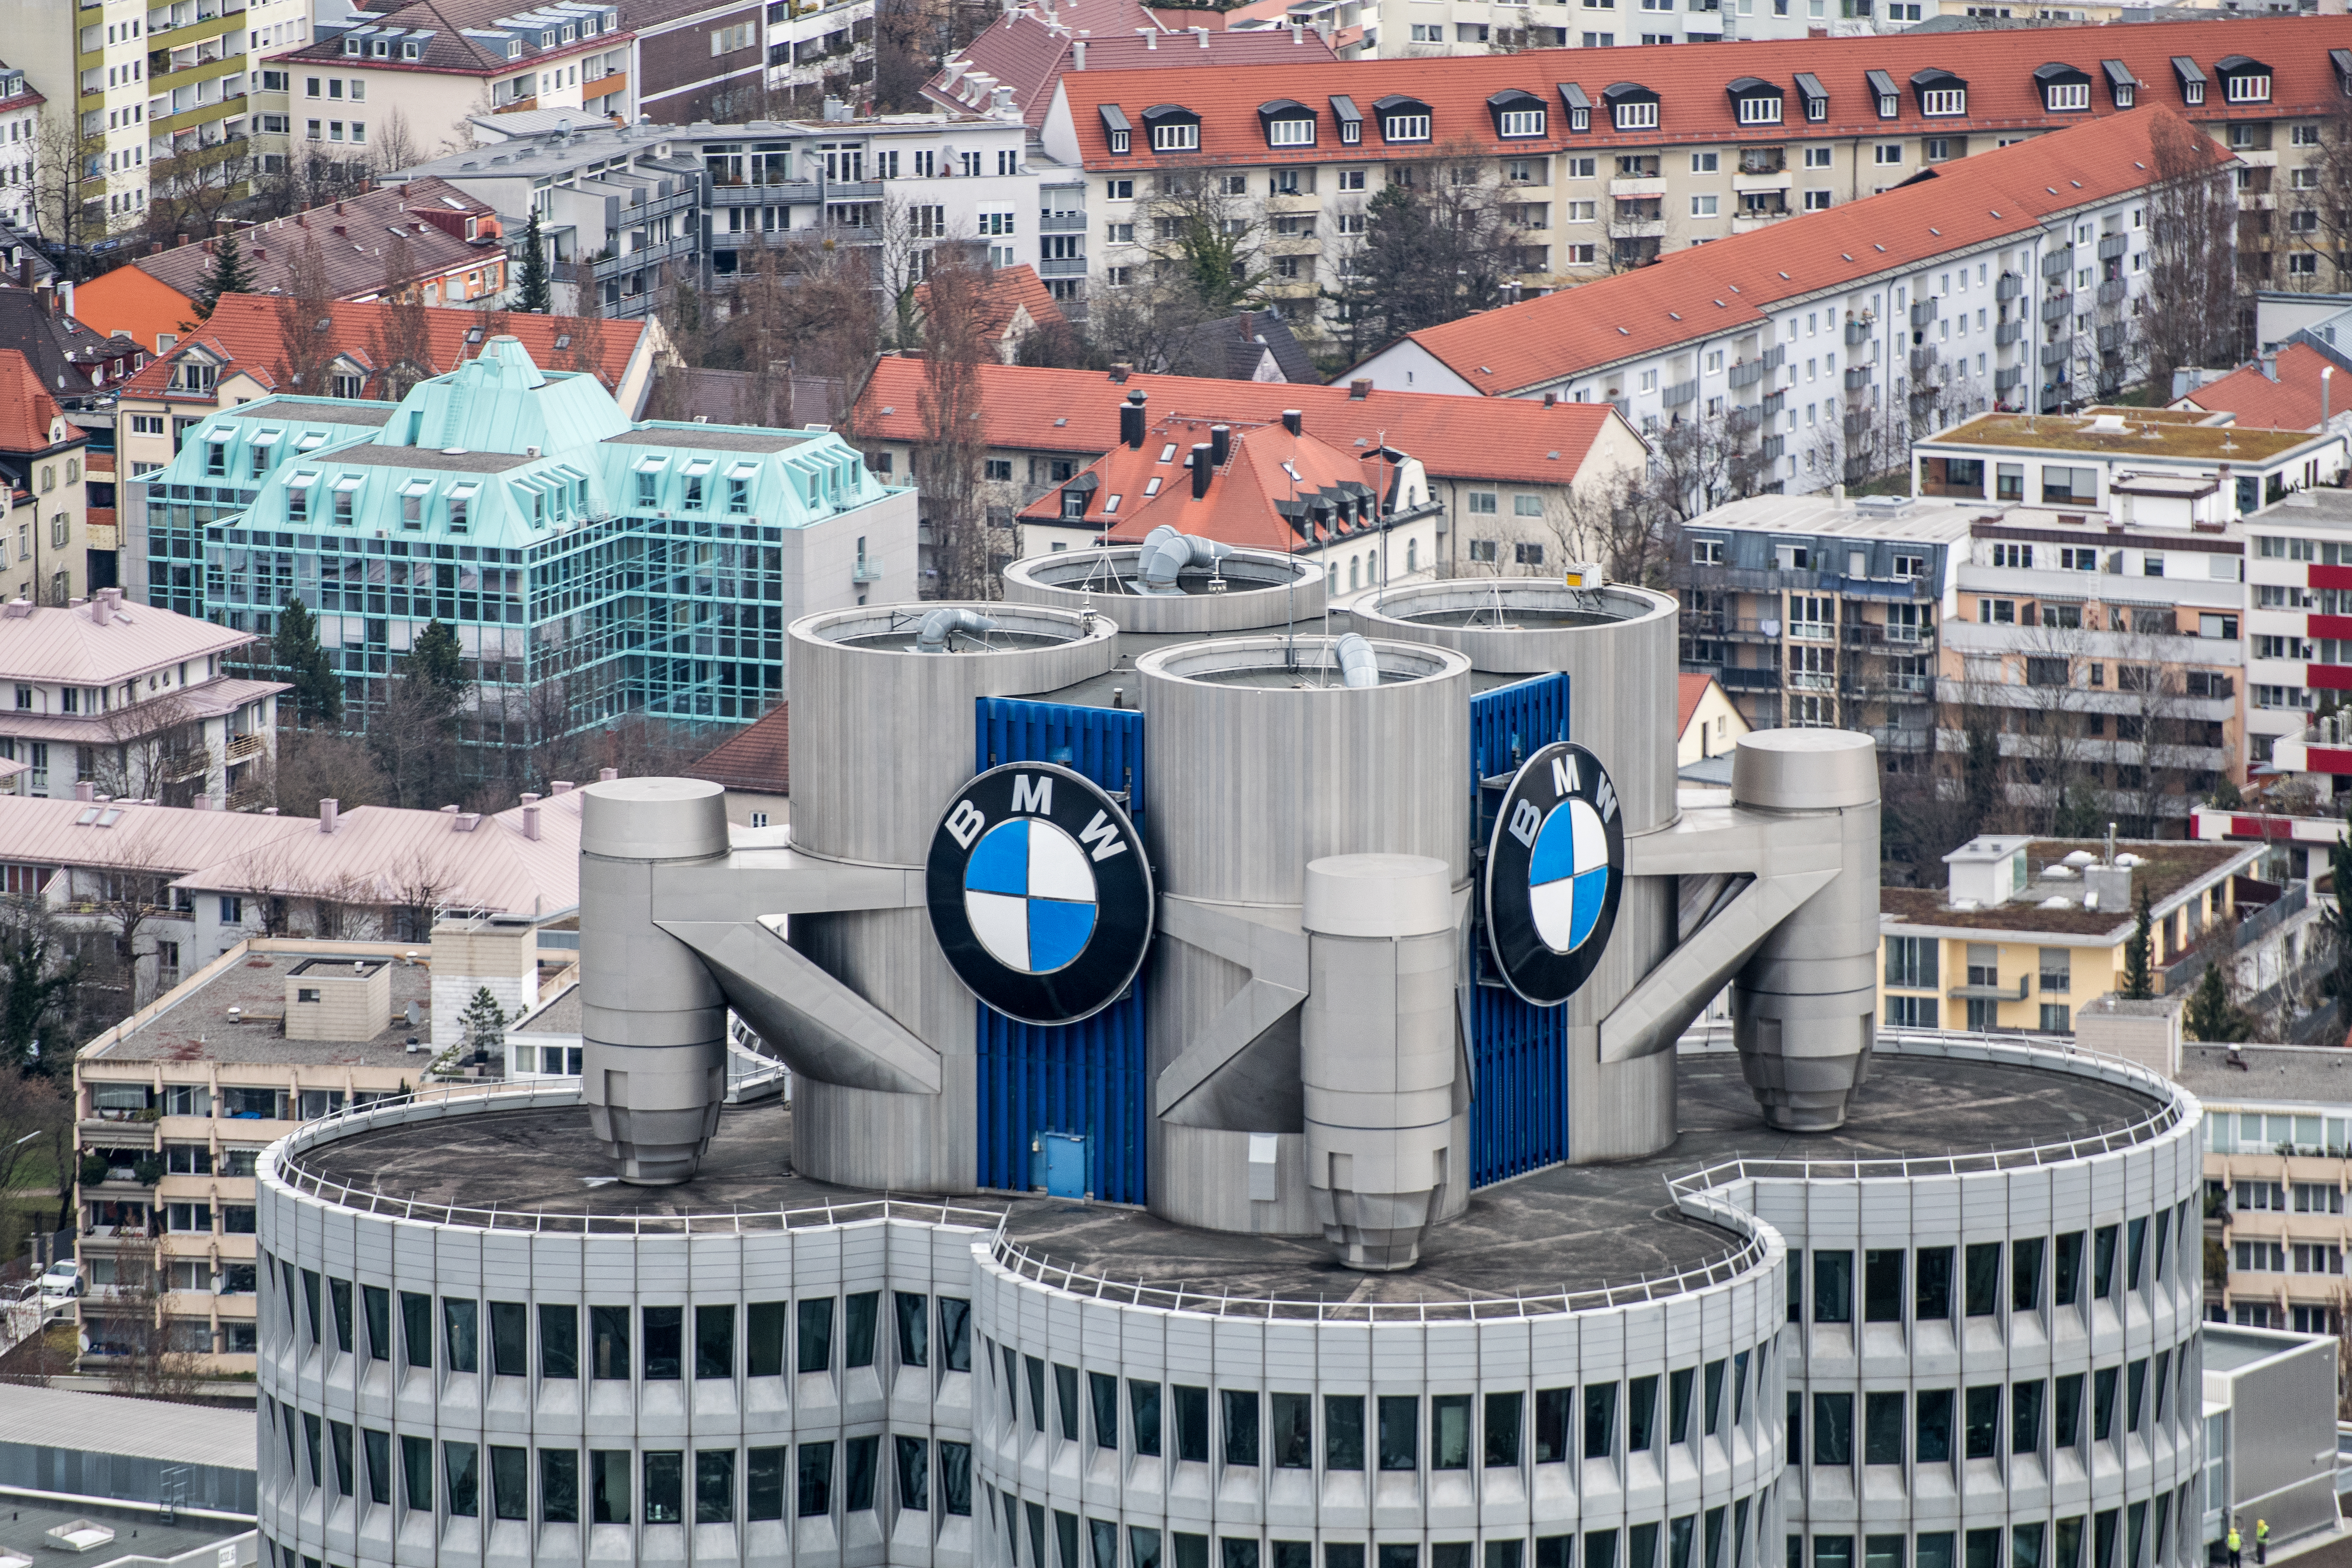 A general view shows the headquarters of the German car manufacturer BMW Group in Munich, Germany, 21 March 2017.